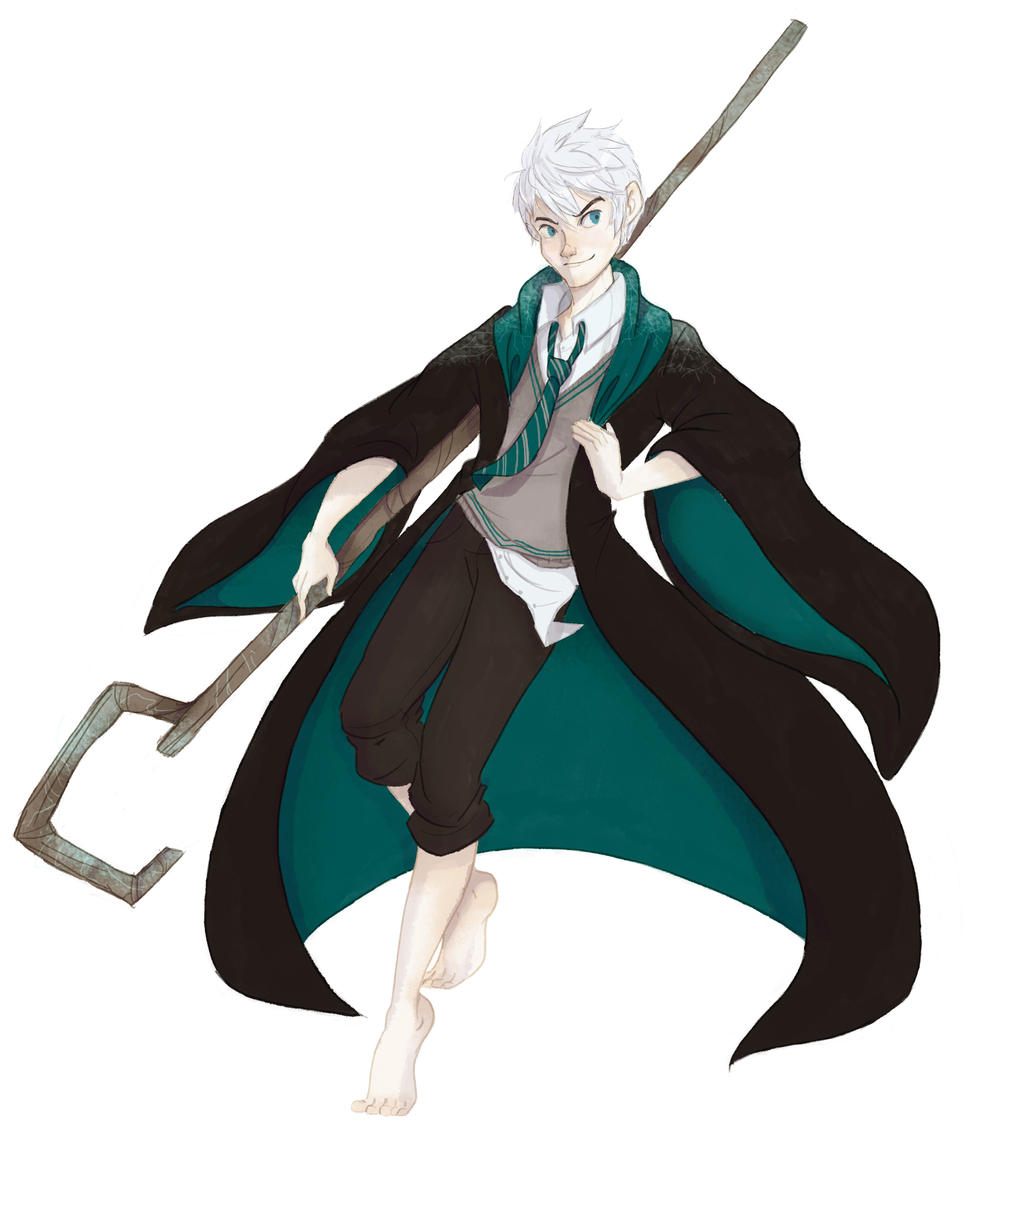 Jack frost Slytherin by Danicornio on DeviantArt